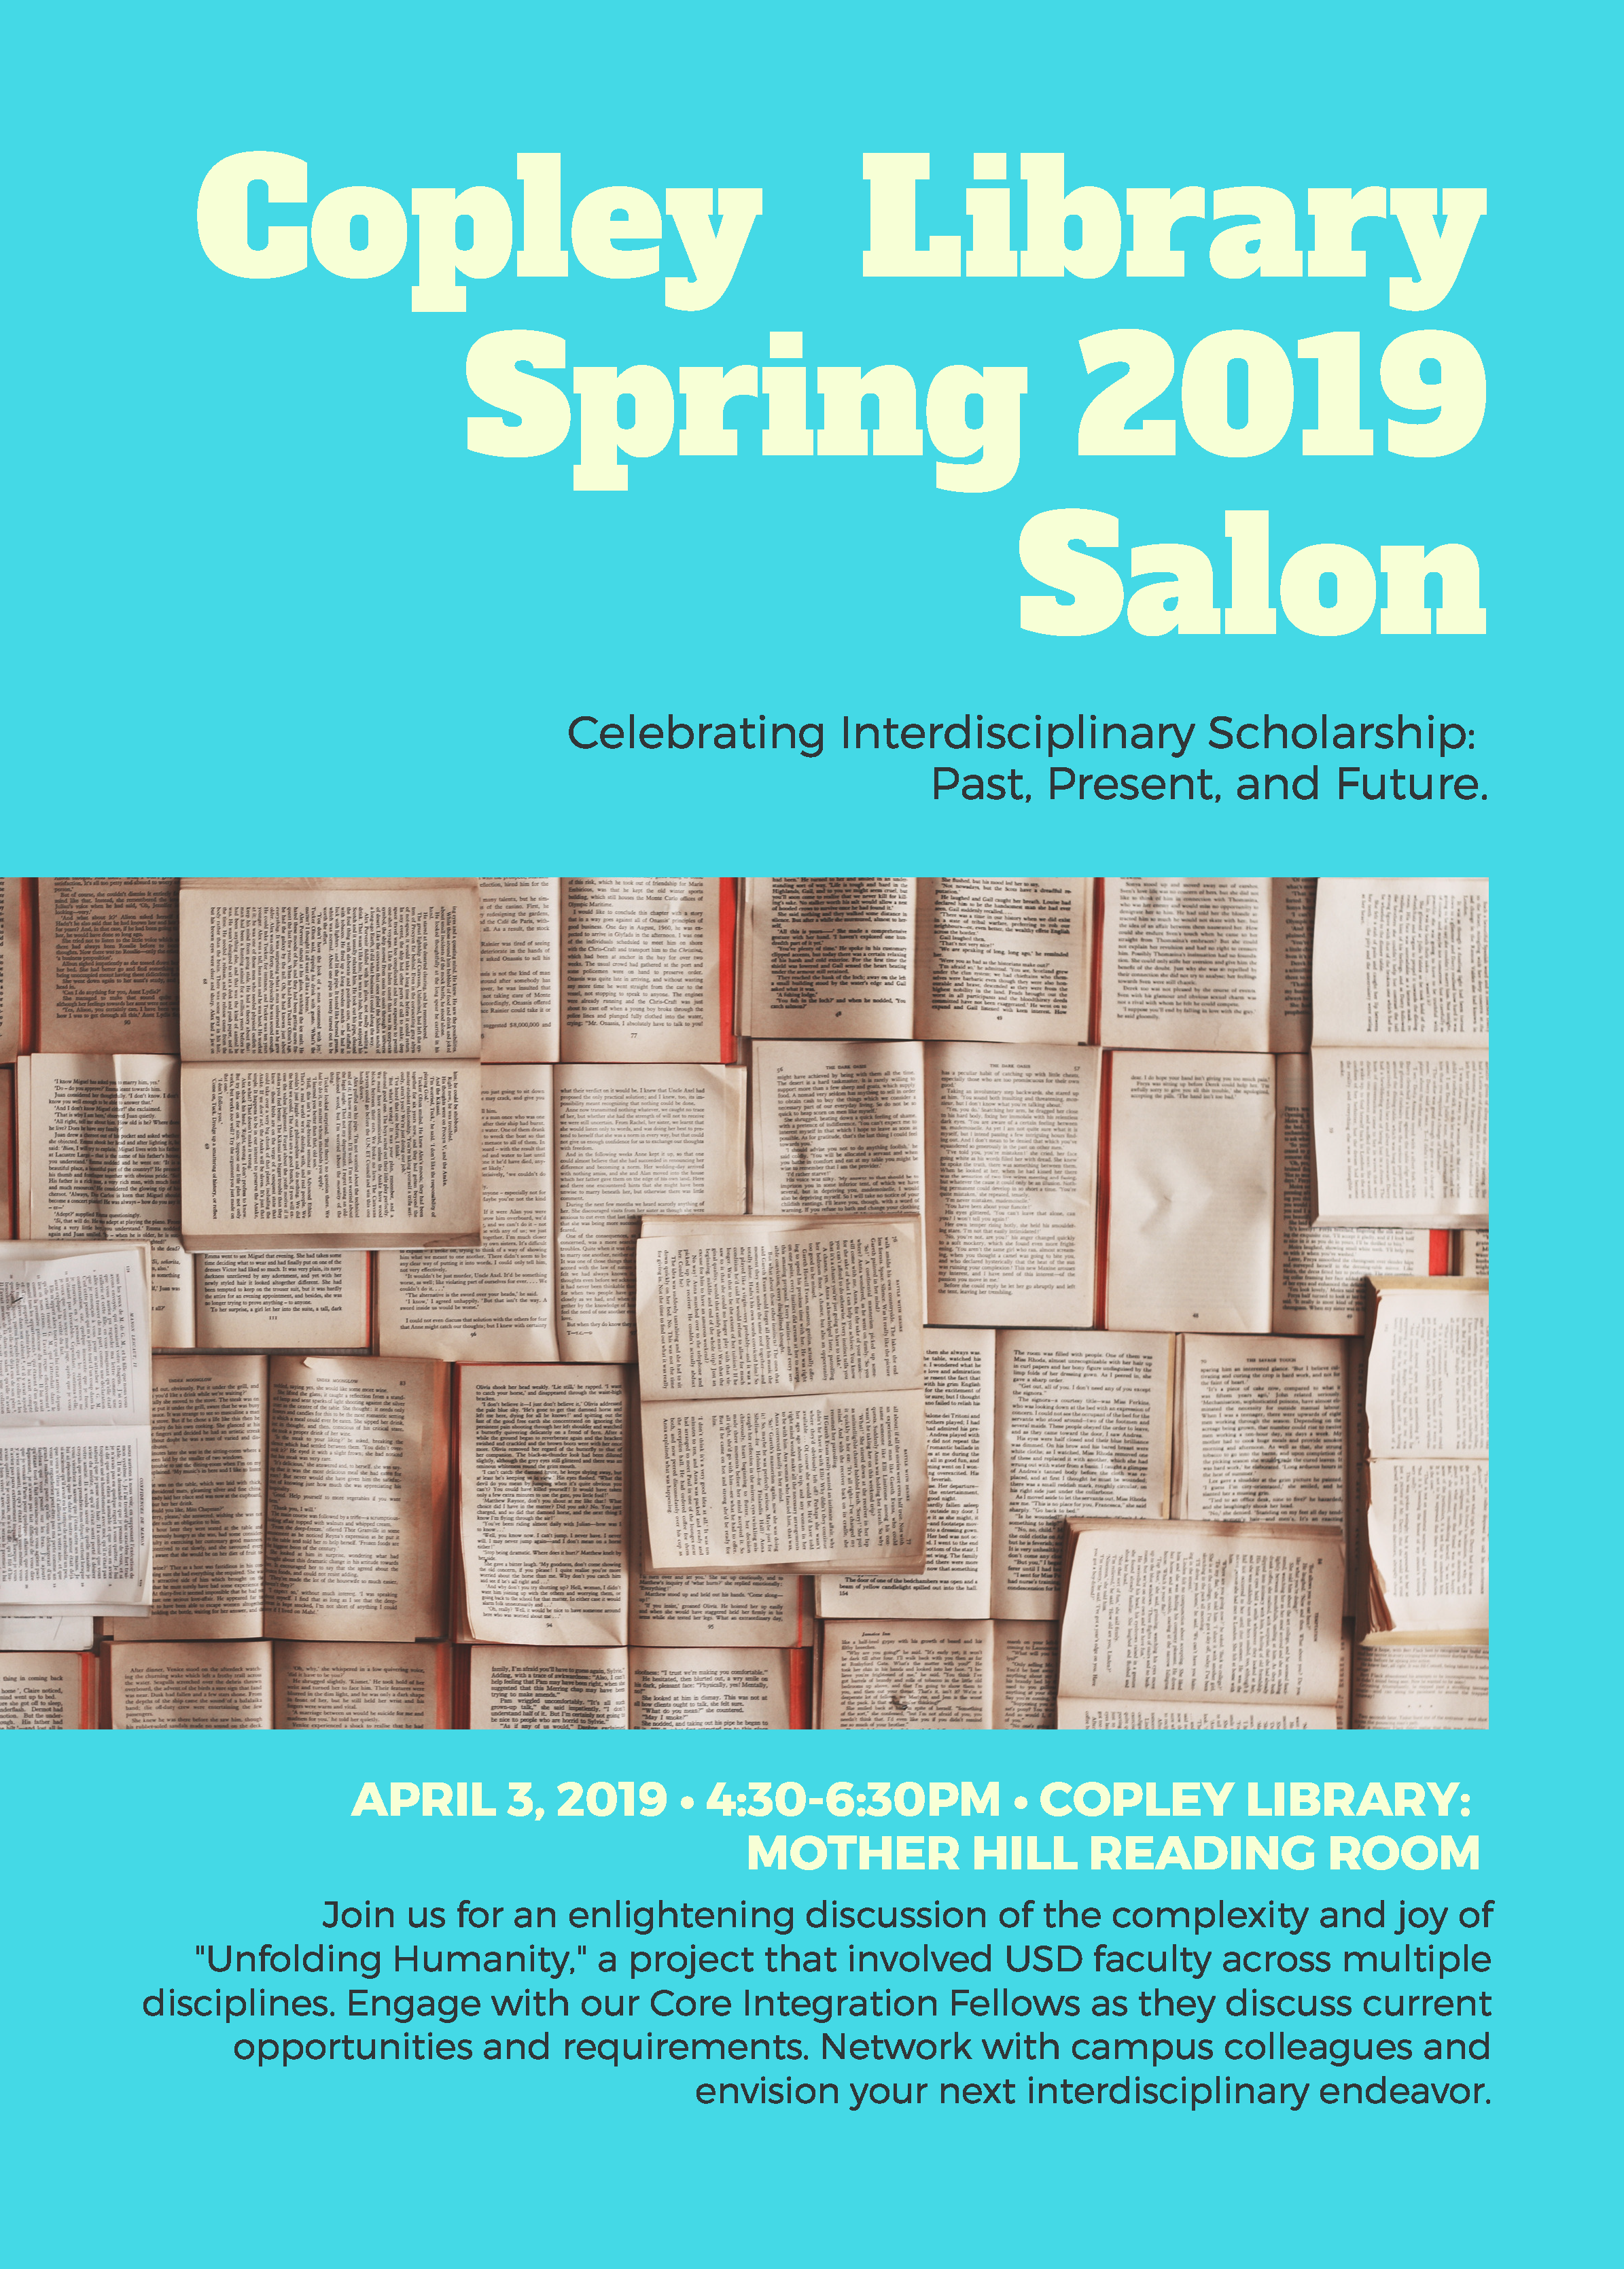 Copley Library Spring 2019 Salon: Celebrating Interdisciplinary Scholarship Past, Present, and Future